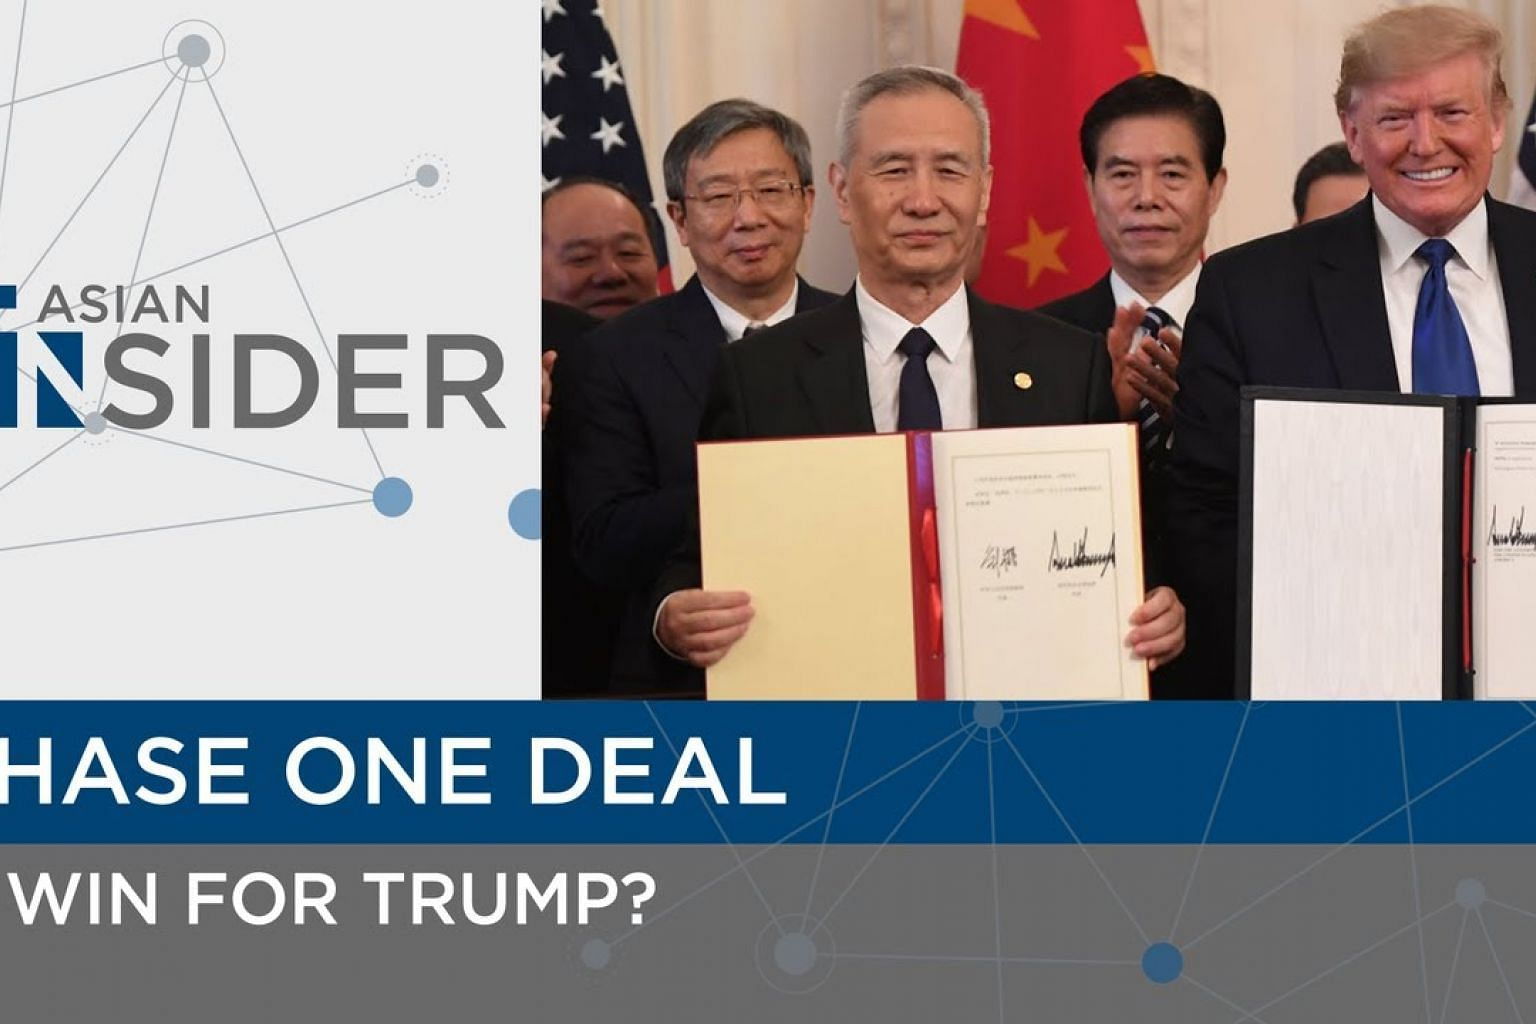 Phase one deal, a win for Donald Trump | Asian Insider | The Straits Times